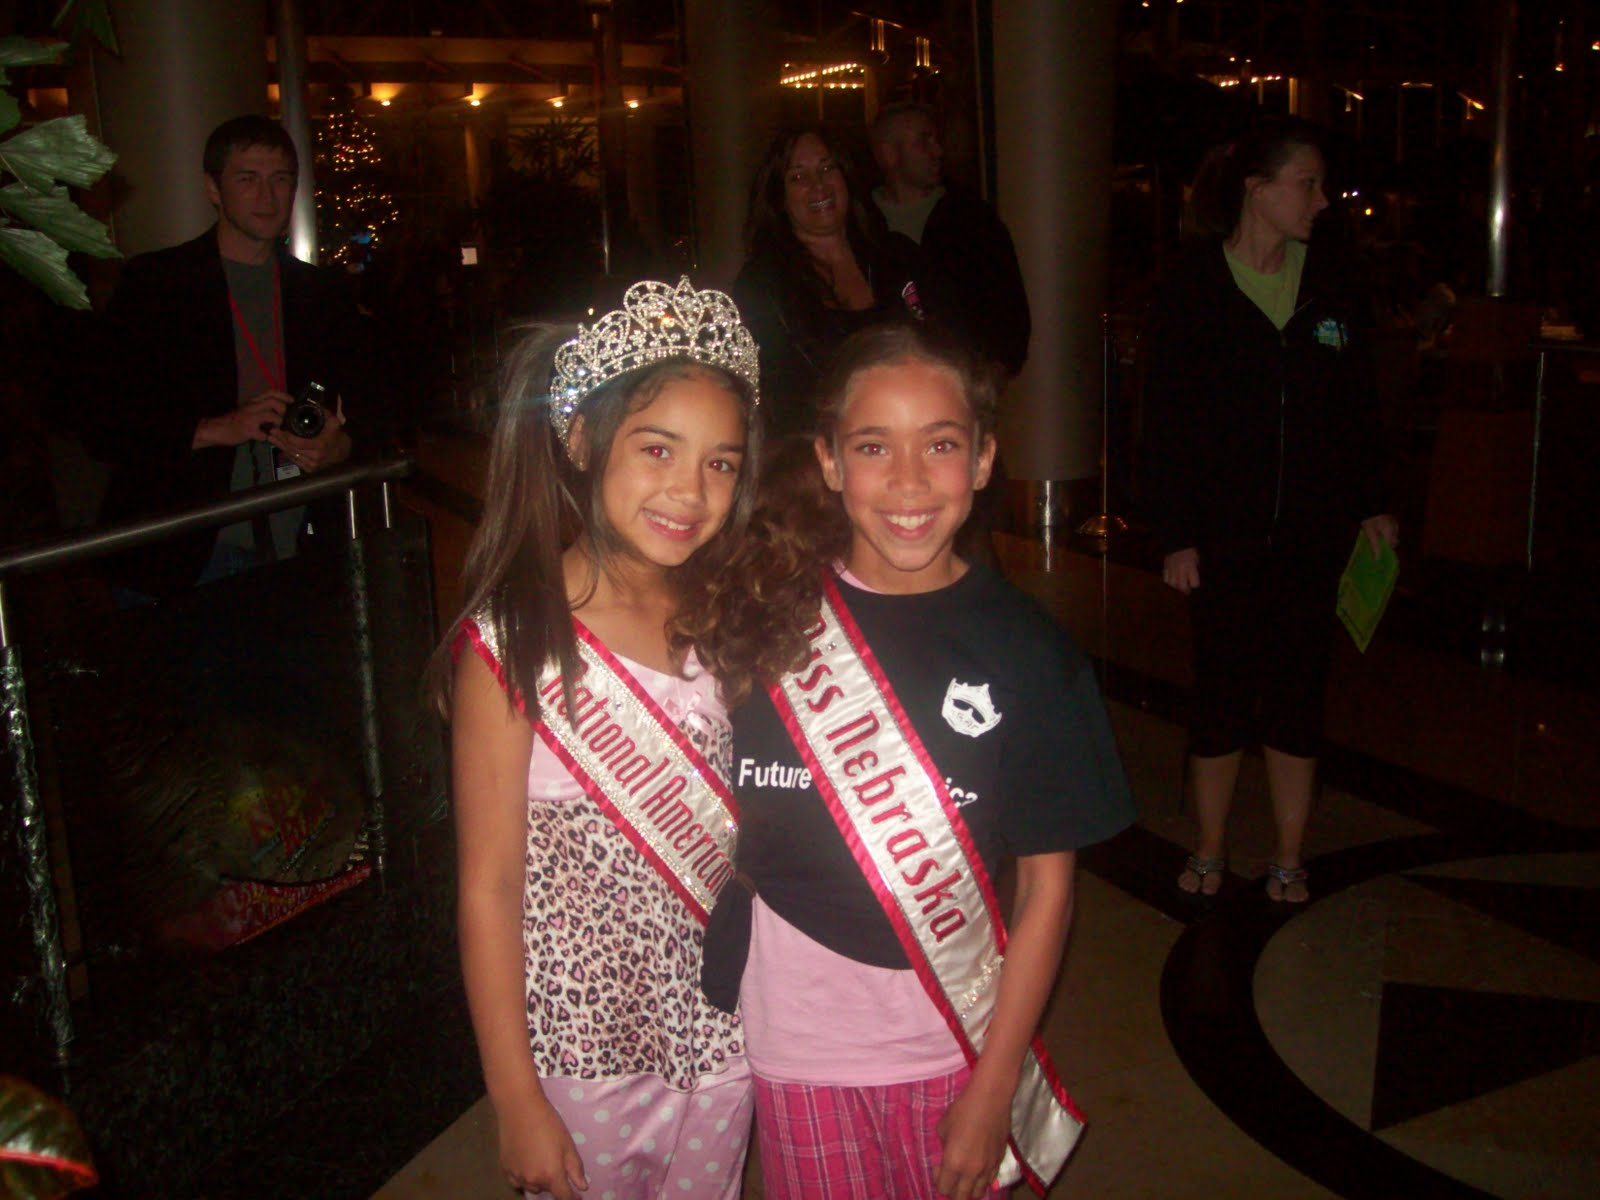 NAMiss Rocks Blog: Saying farewell is Miss Nebraska Jr. Preteen